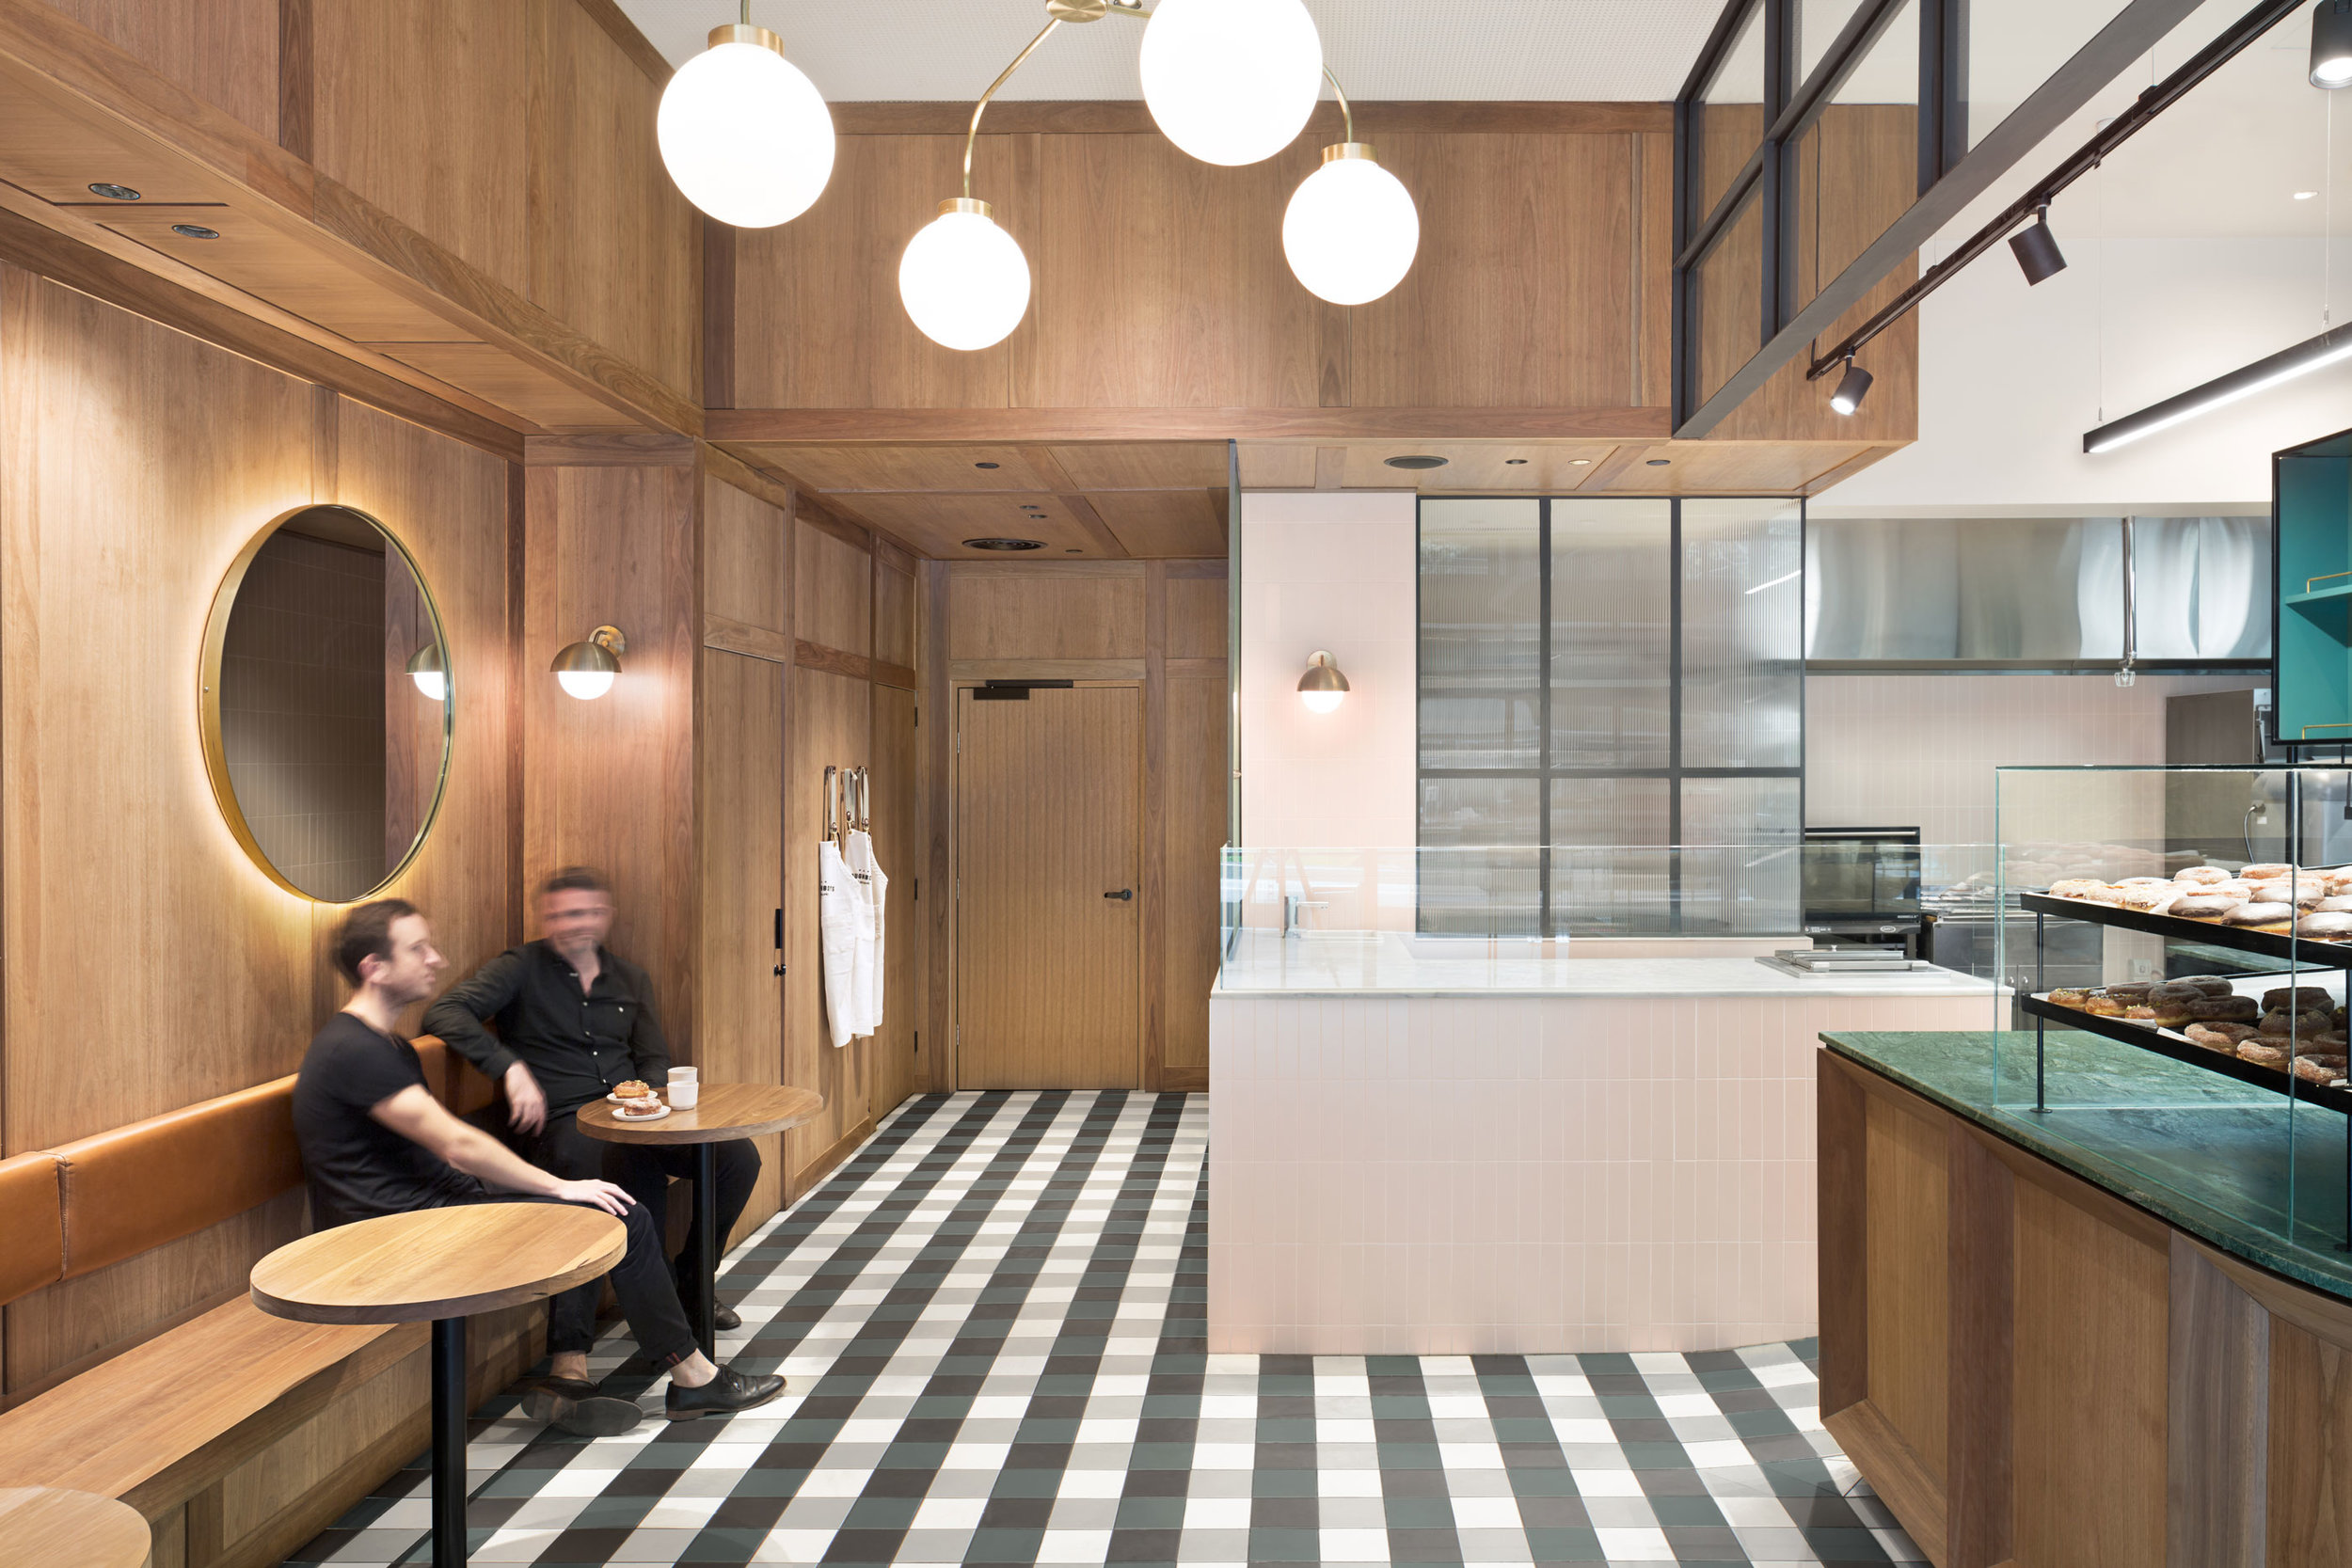 photography_by_sarah_anderson_photography_of_dough_boys_doughnut_making_station_and_seating_by_studio_esteta